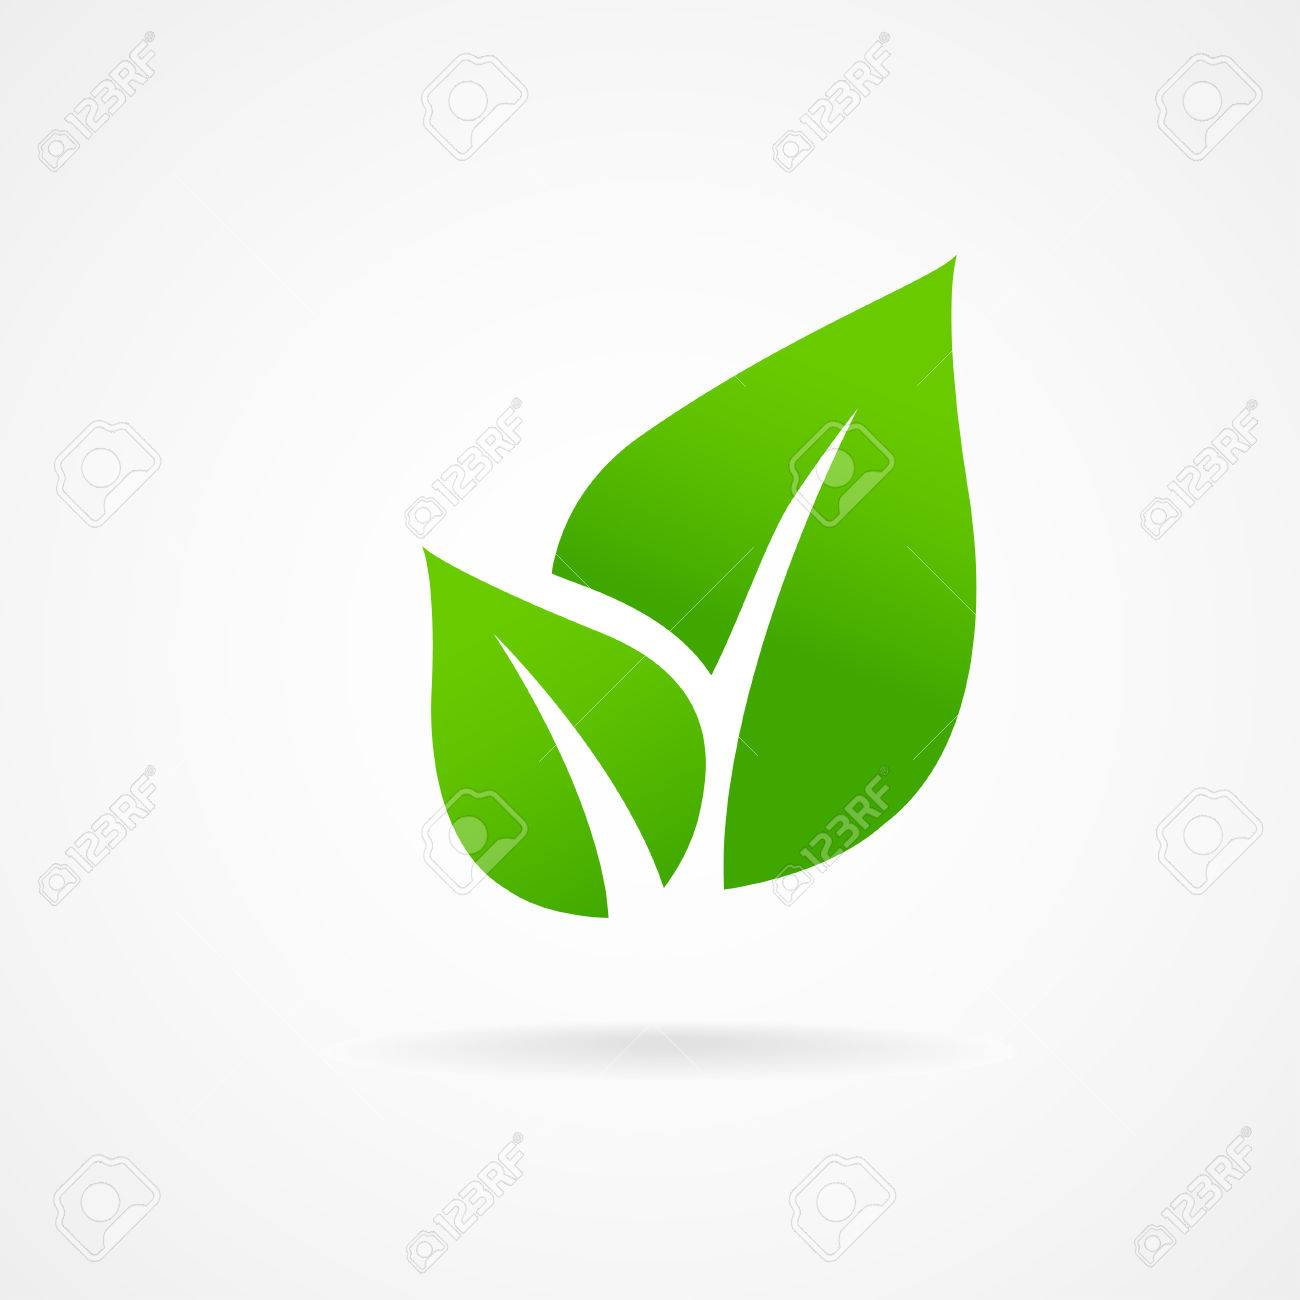 Eco icon green leaf vector illustration isolated - 25314565